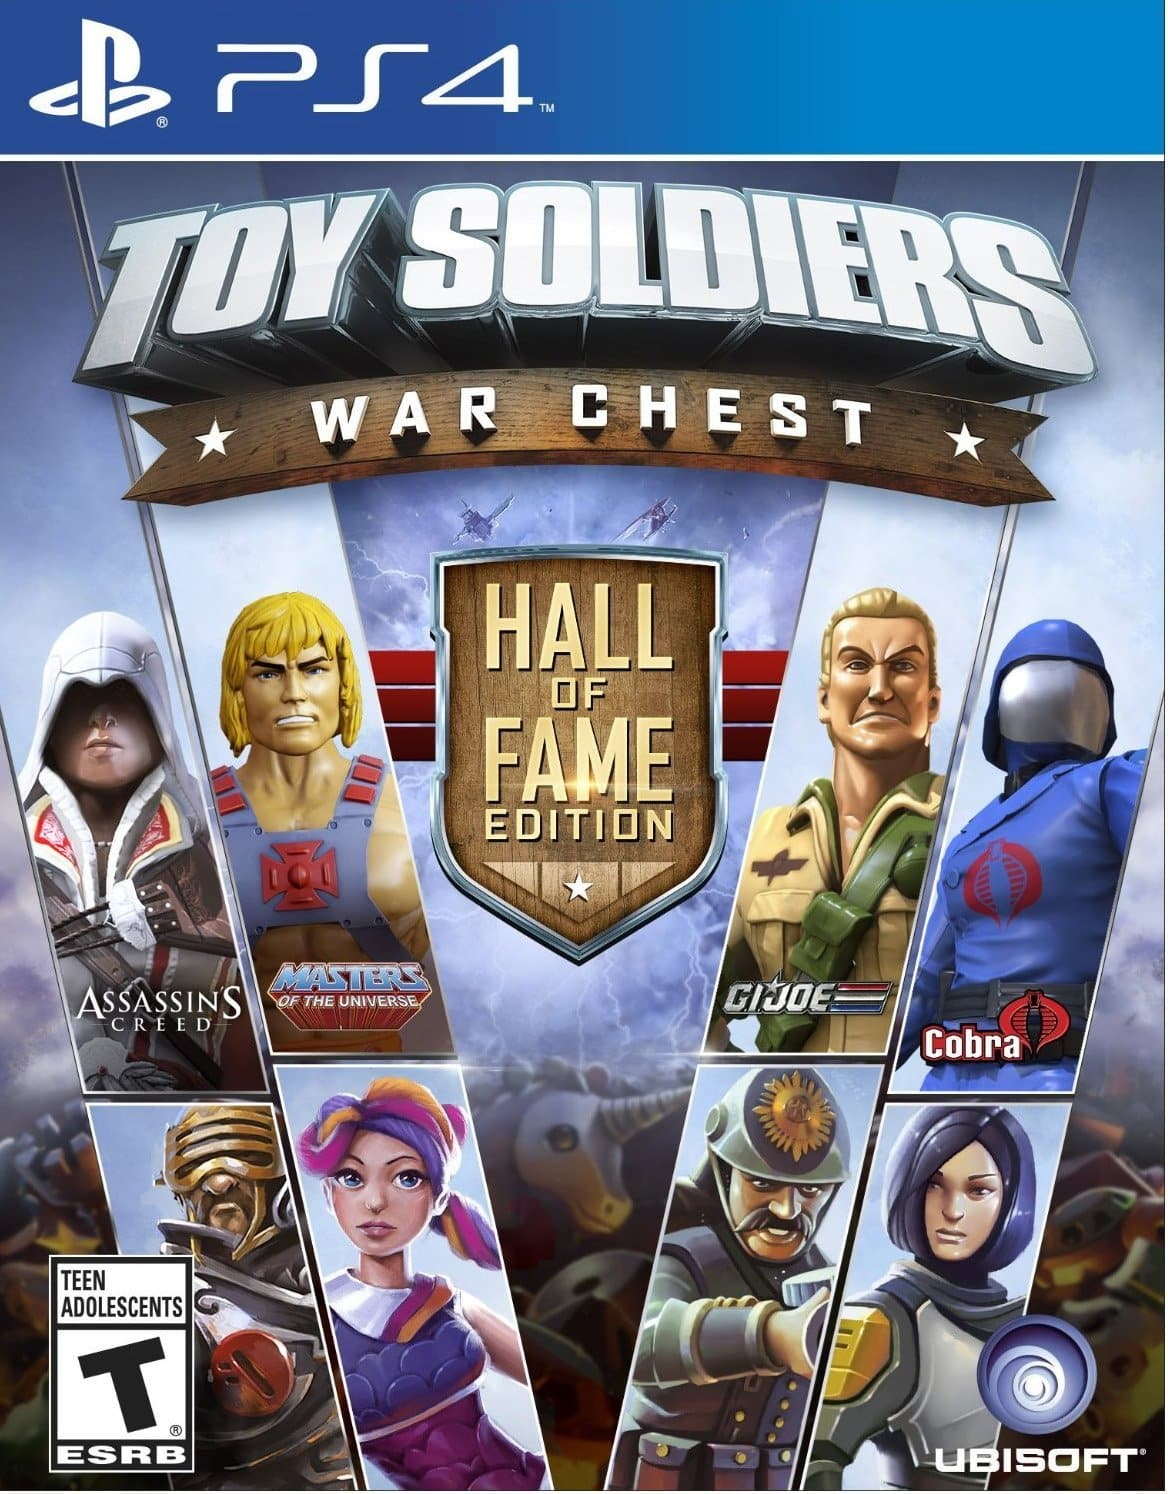 "Toy Soldiers: War Chest Hall of Fame Edition (PS4 or Xbox One) $19.99 or $15.99 w/ GCU @ Best Buy ""10/4-10/10"""